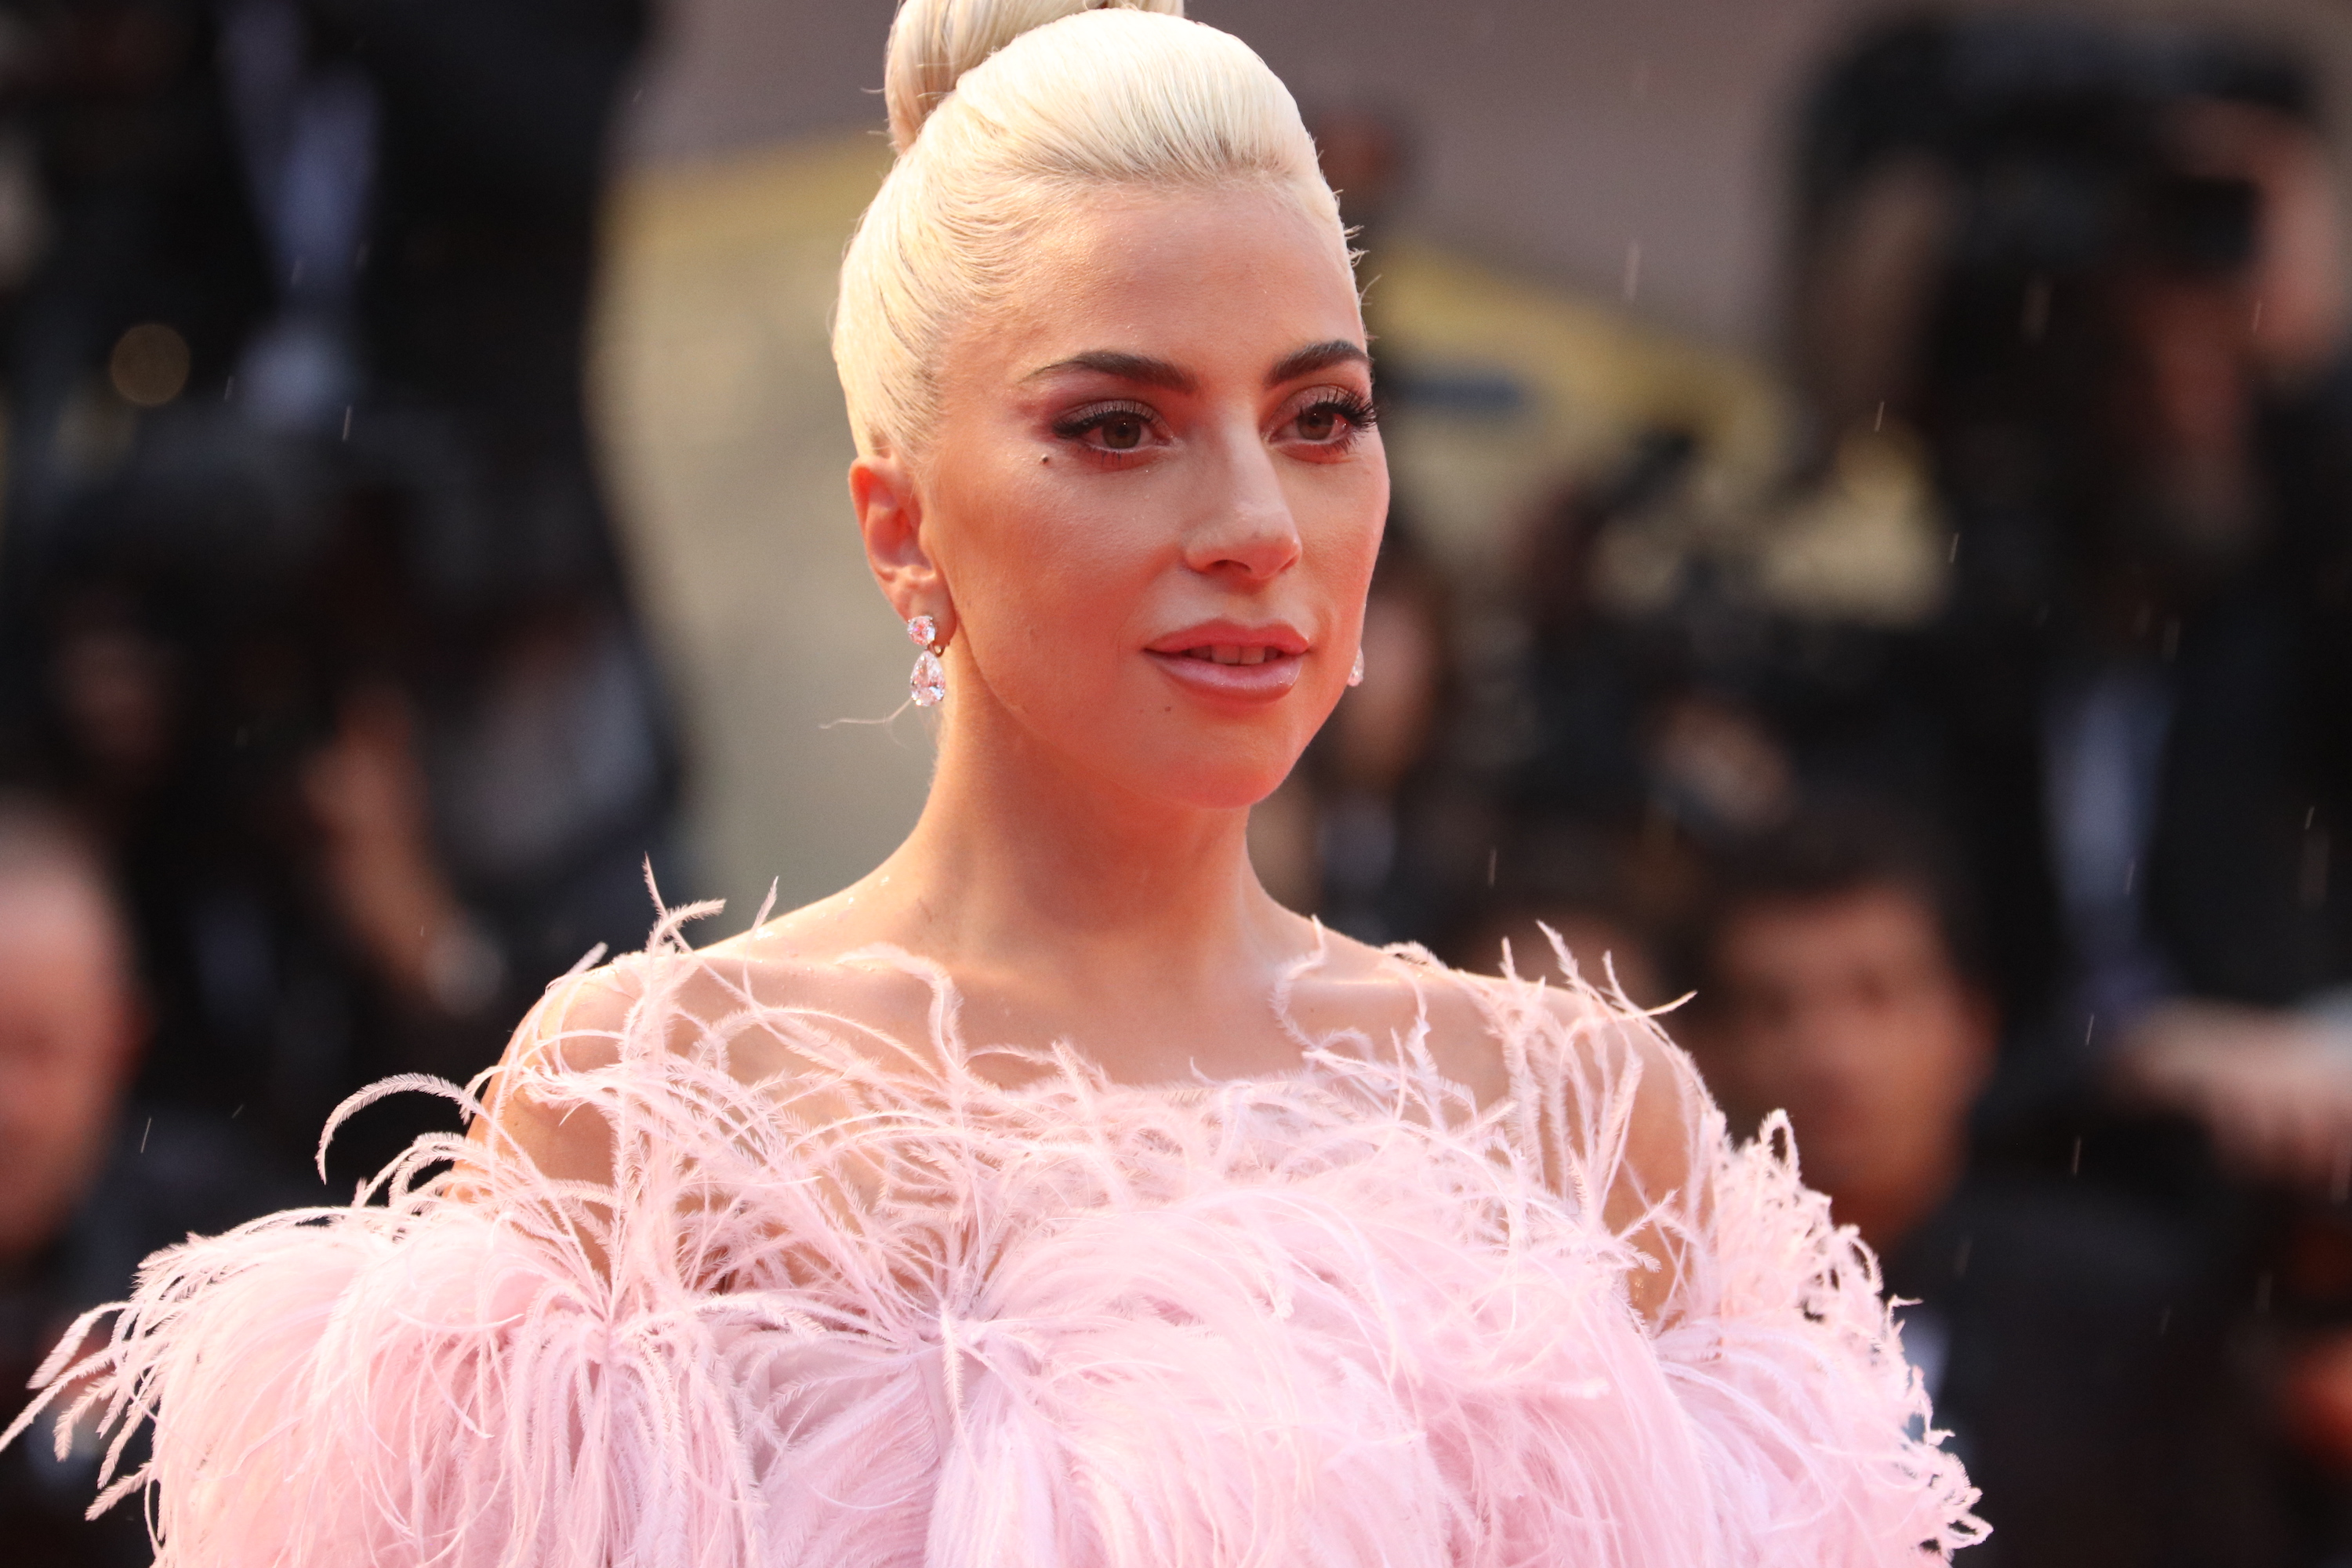 Venezia 2018: un primo piano di Lady Gaga sul red carpet di A Star is Born